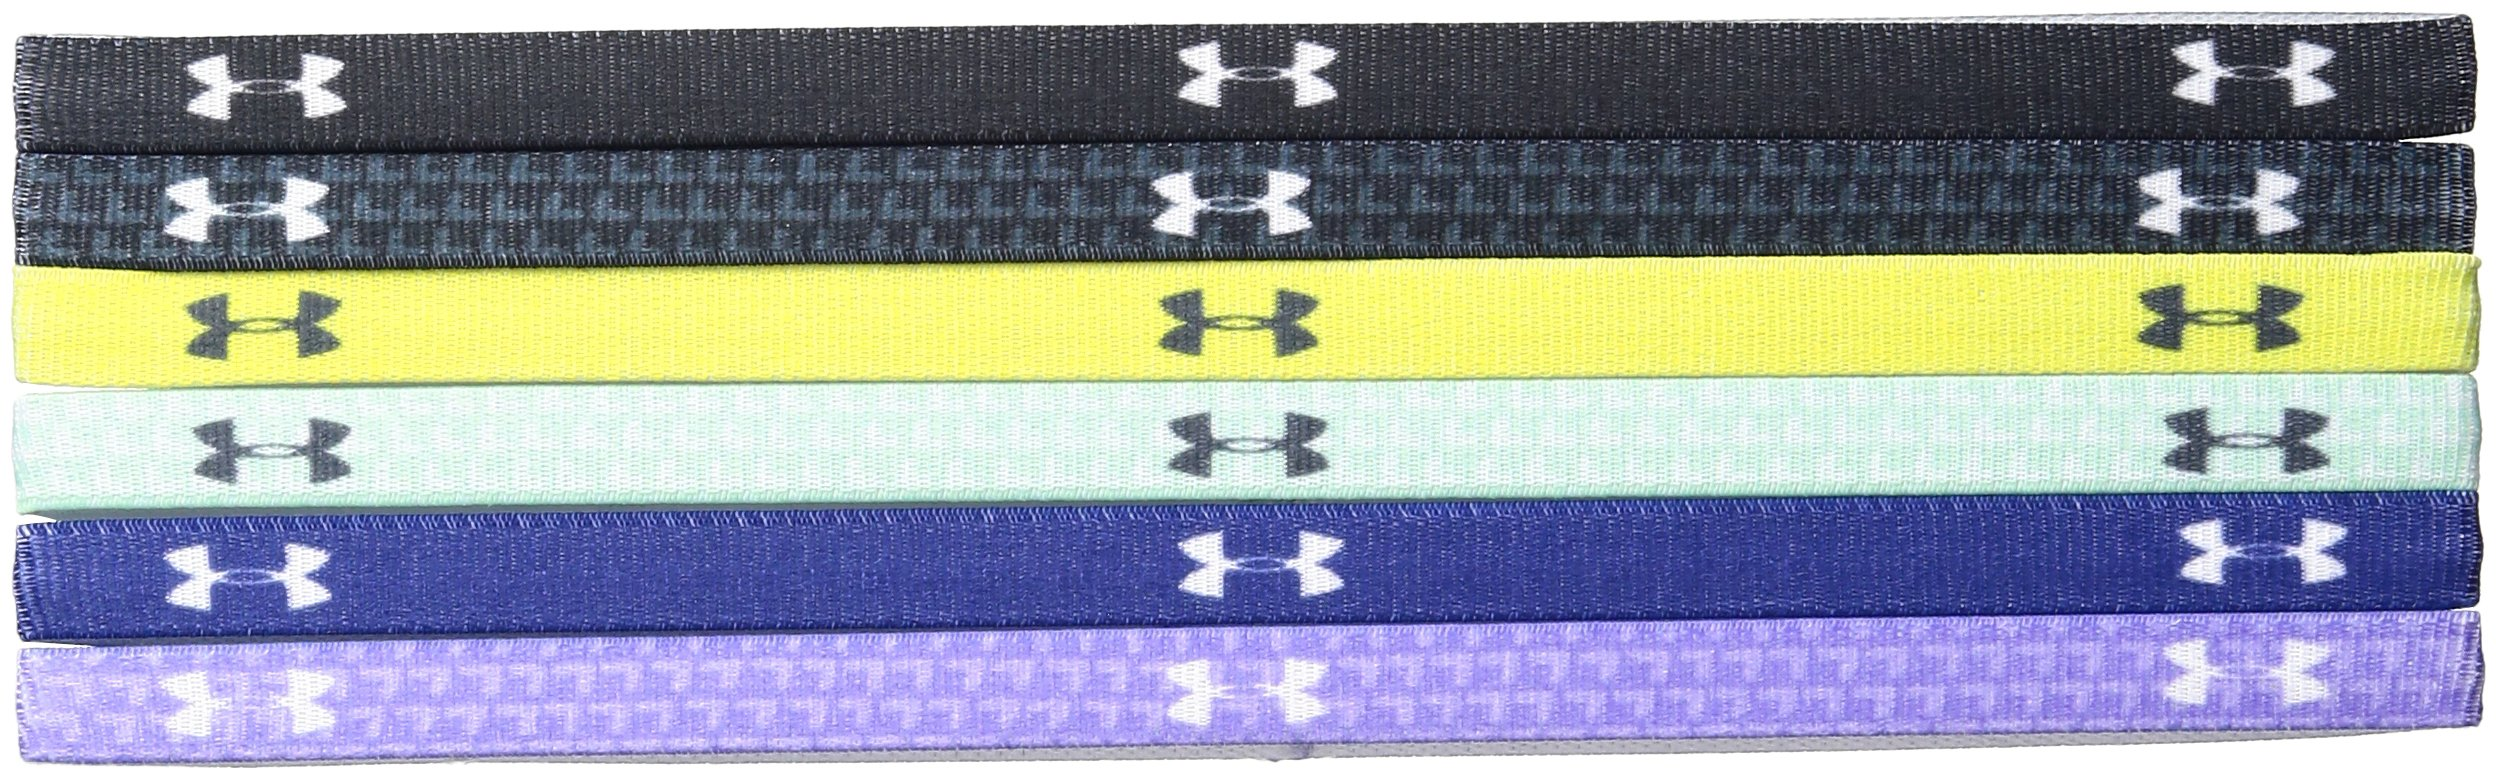 Under Armour Girls' Graphic Headbands - 6 Pack, Black/Smash Yellow, One Size Fits All